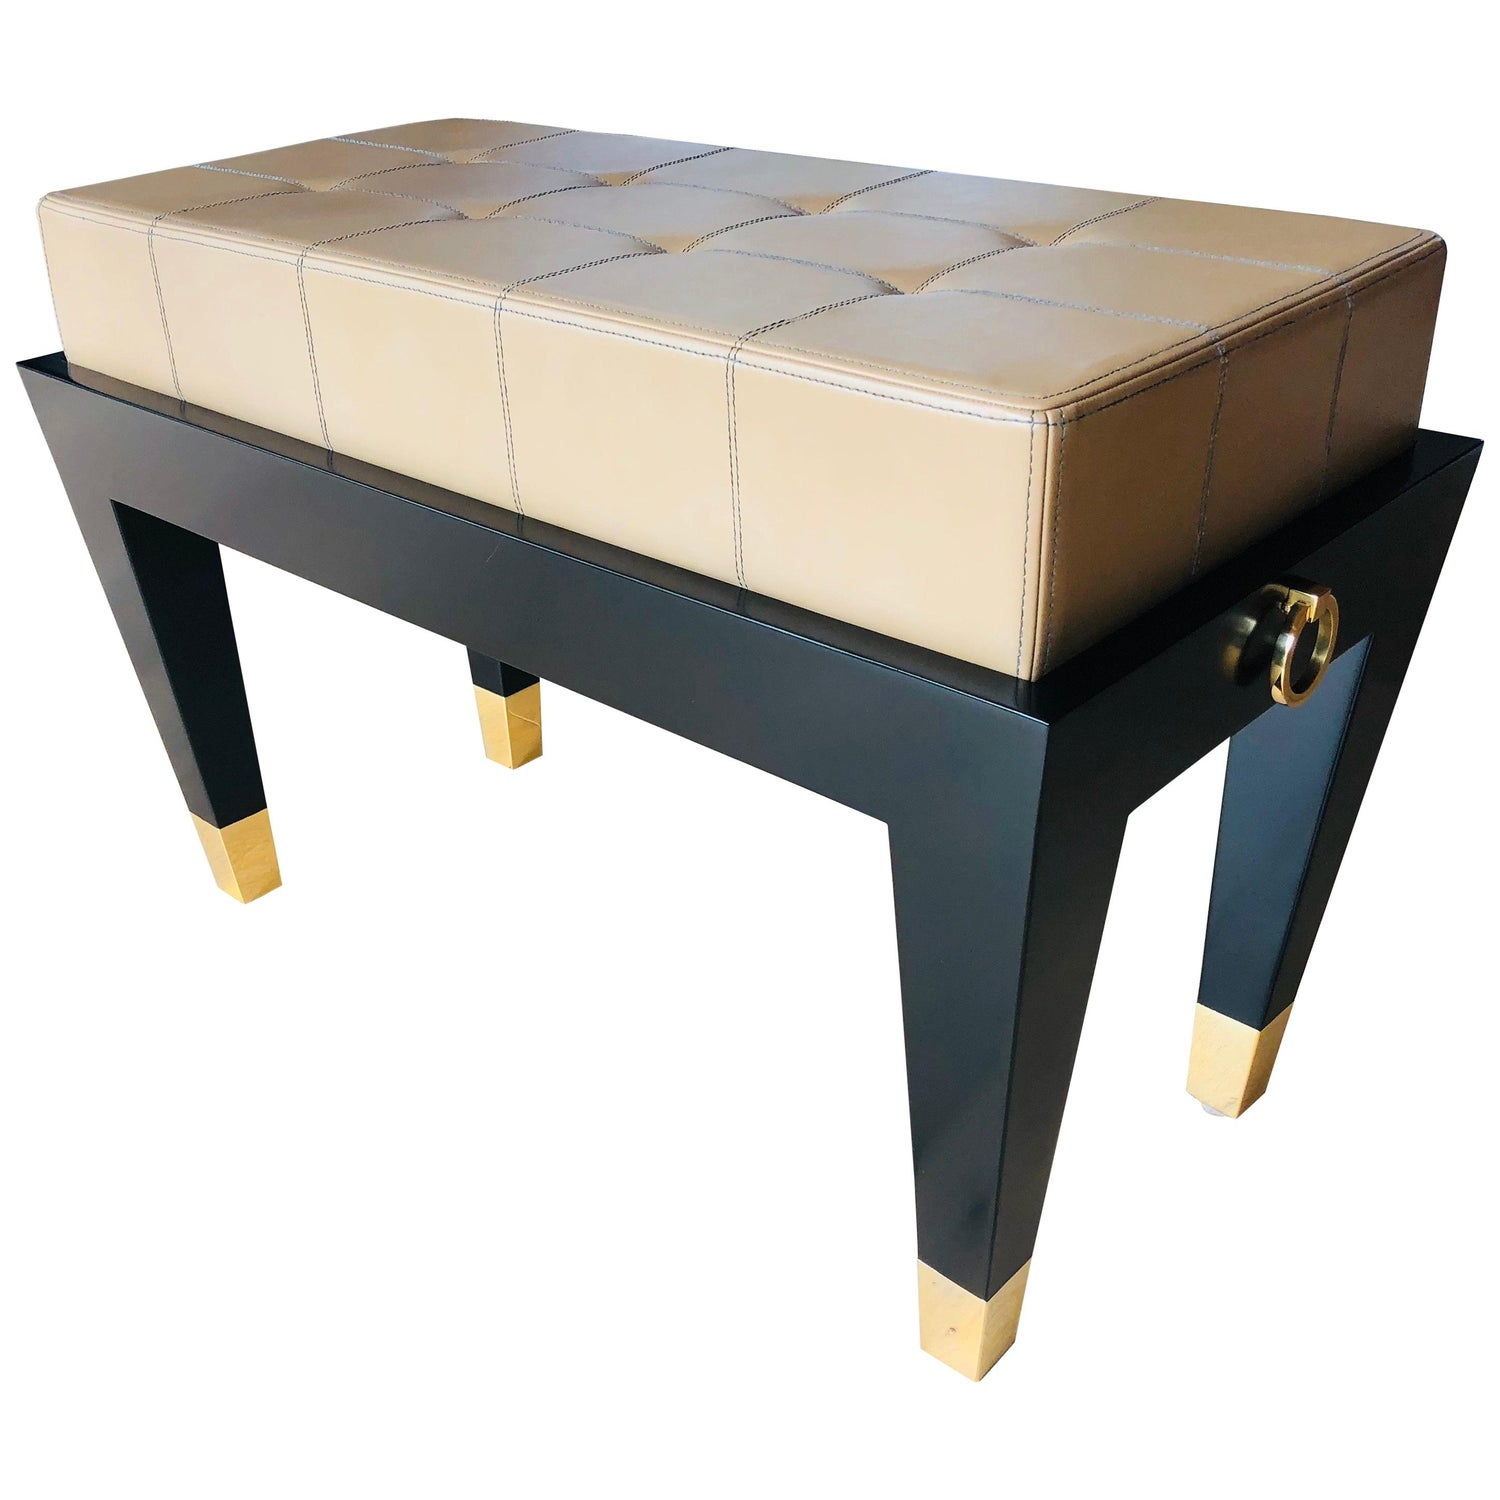 Sensational Custom Black Lacquer Piano Bench With Gold Rings Detail Creativecarmelina Interior Chair Design Creativecarmelinacom